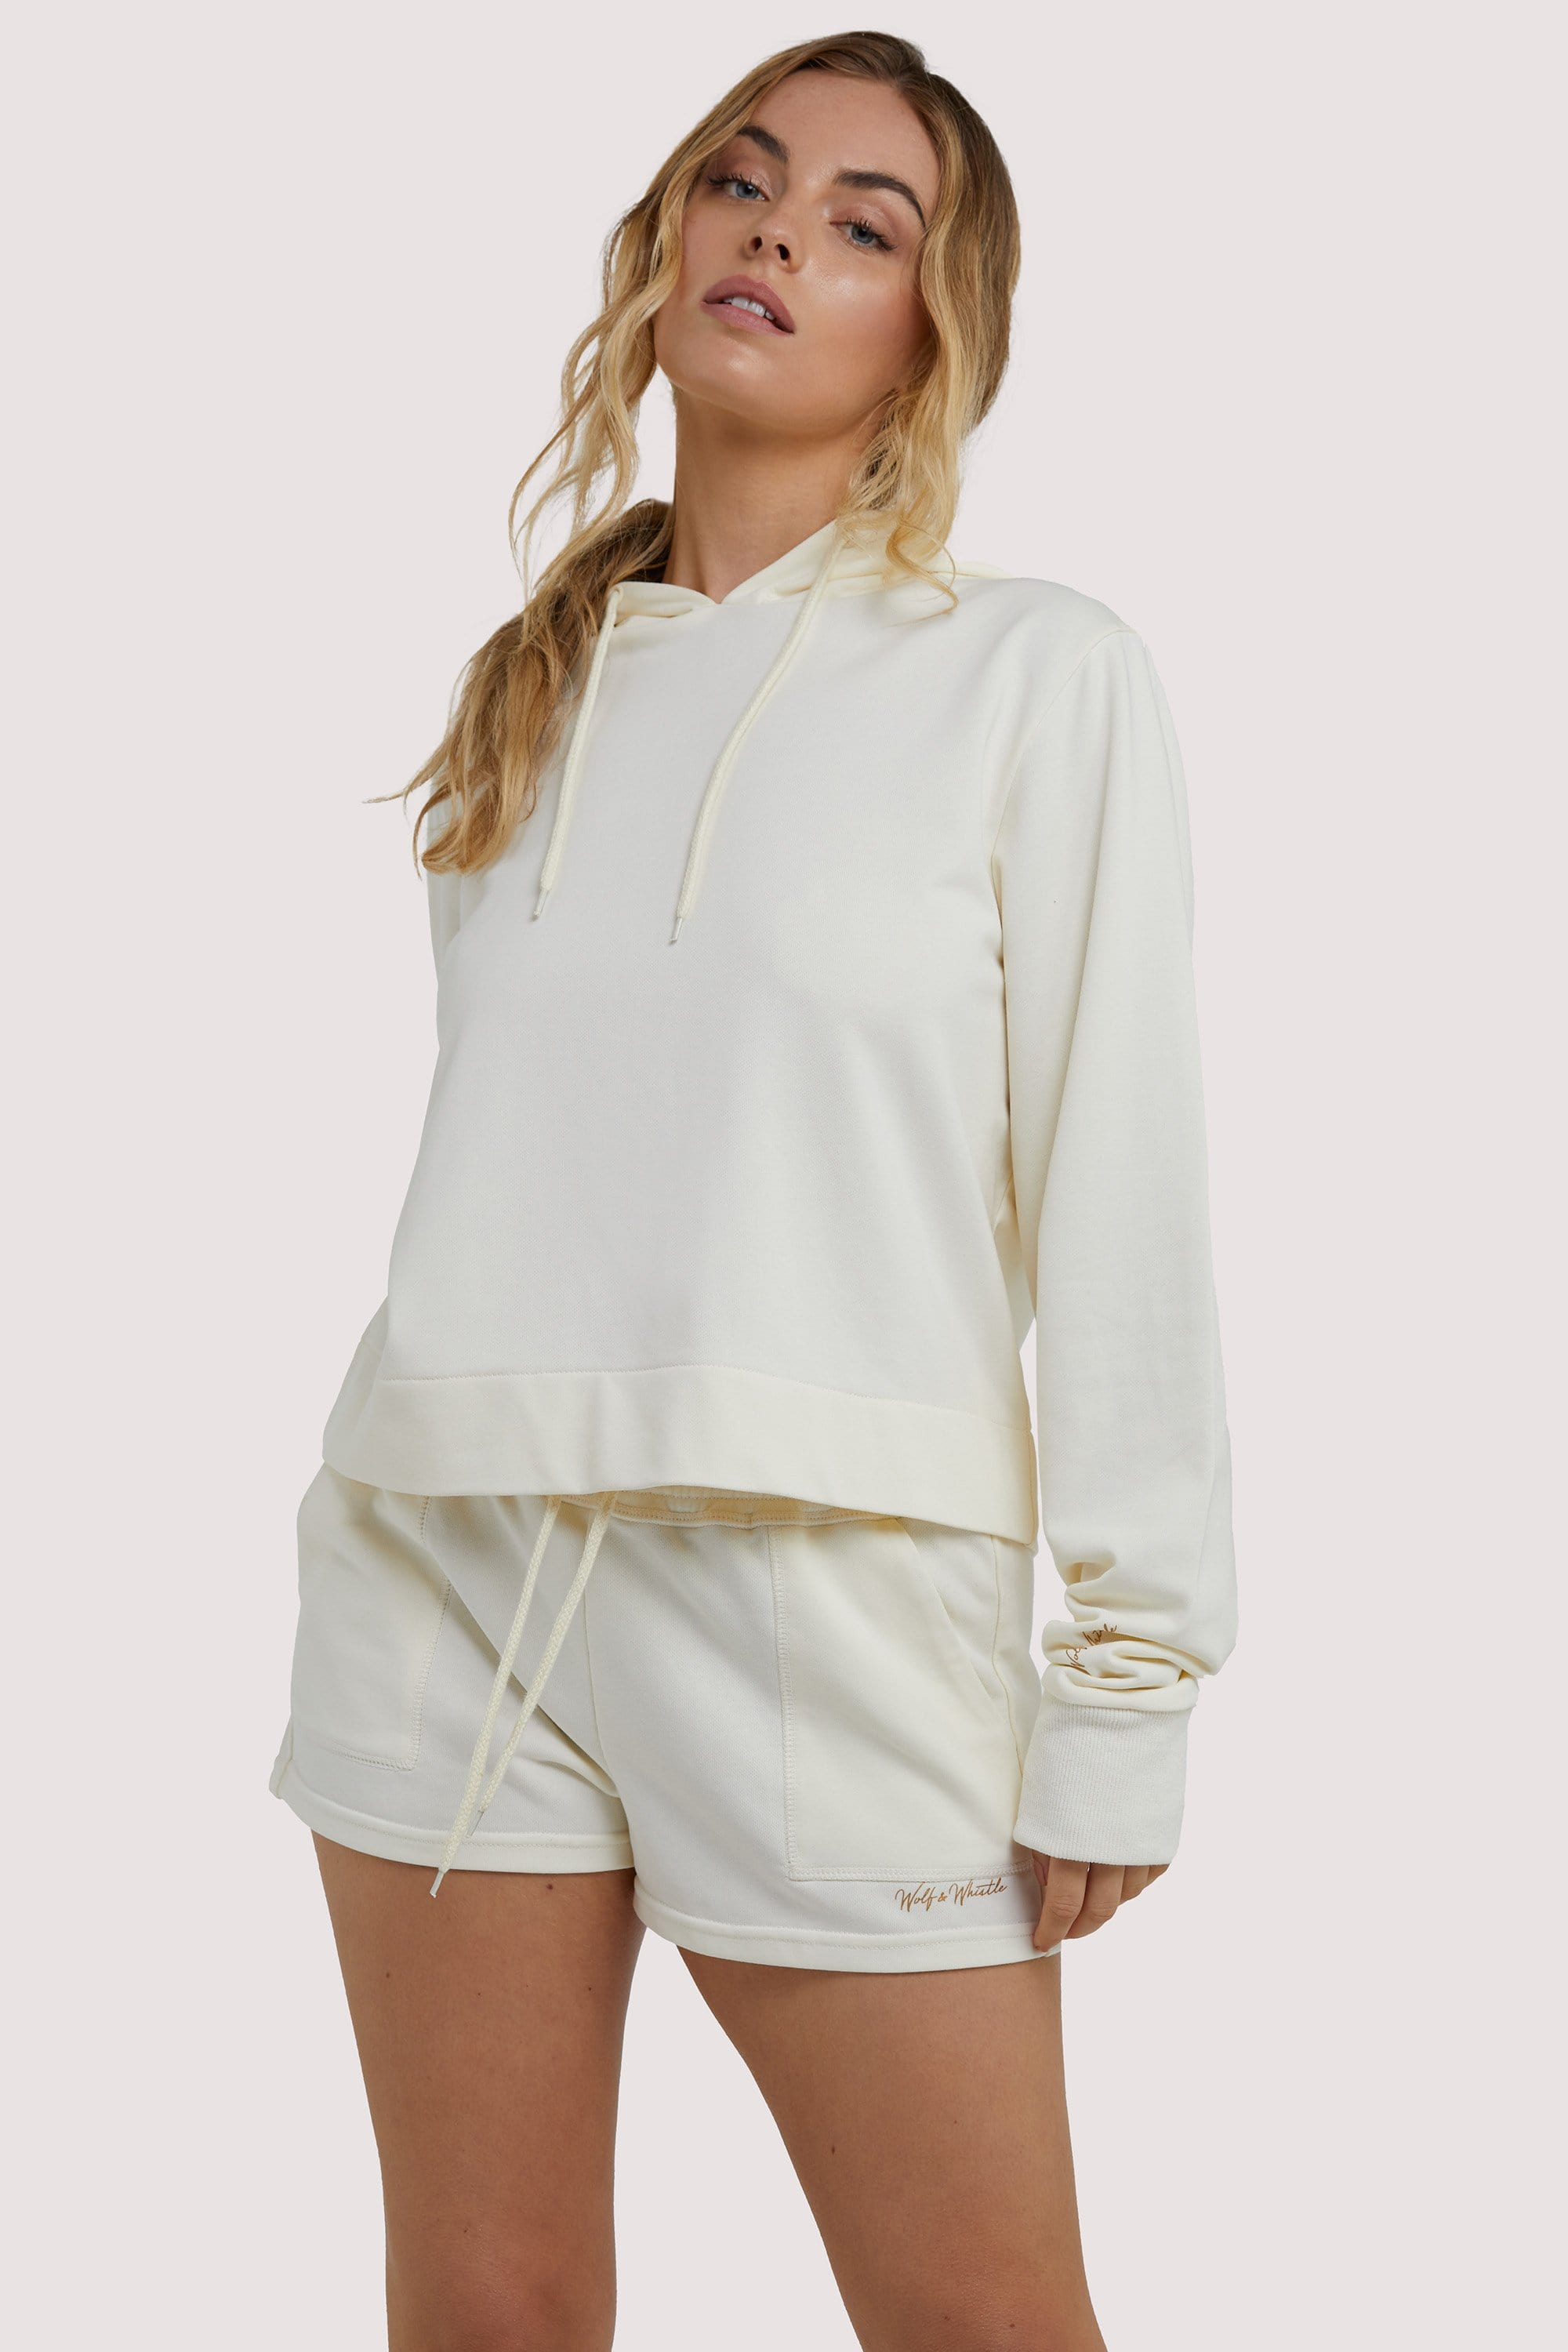 Wolf & Whistle Winter White Hooded Top UK 10 / US 6